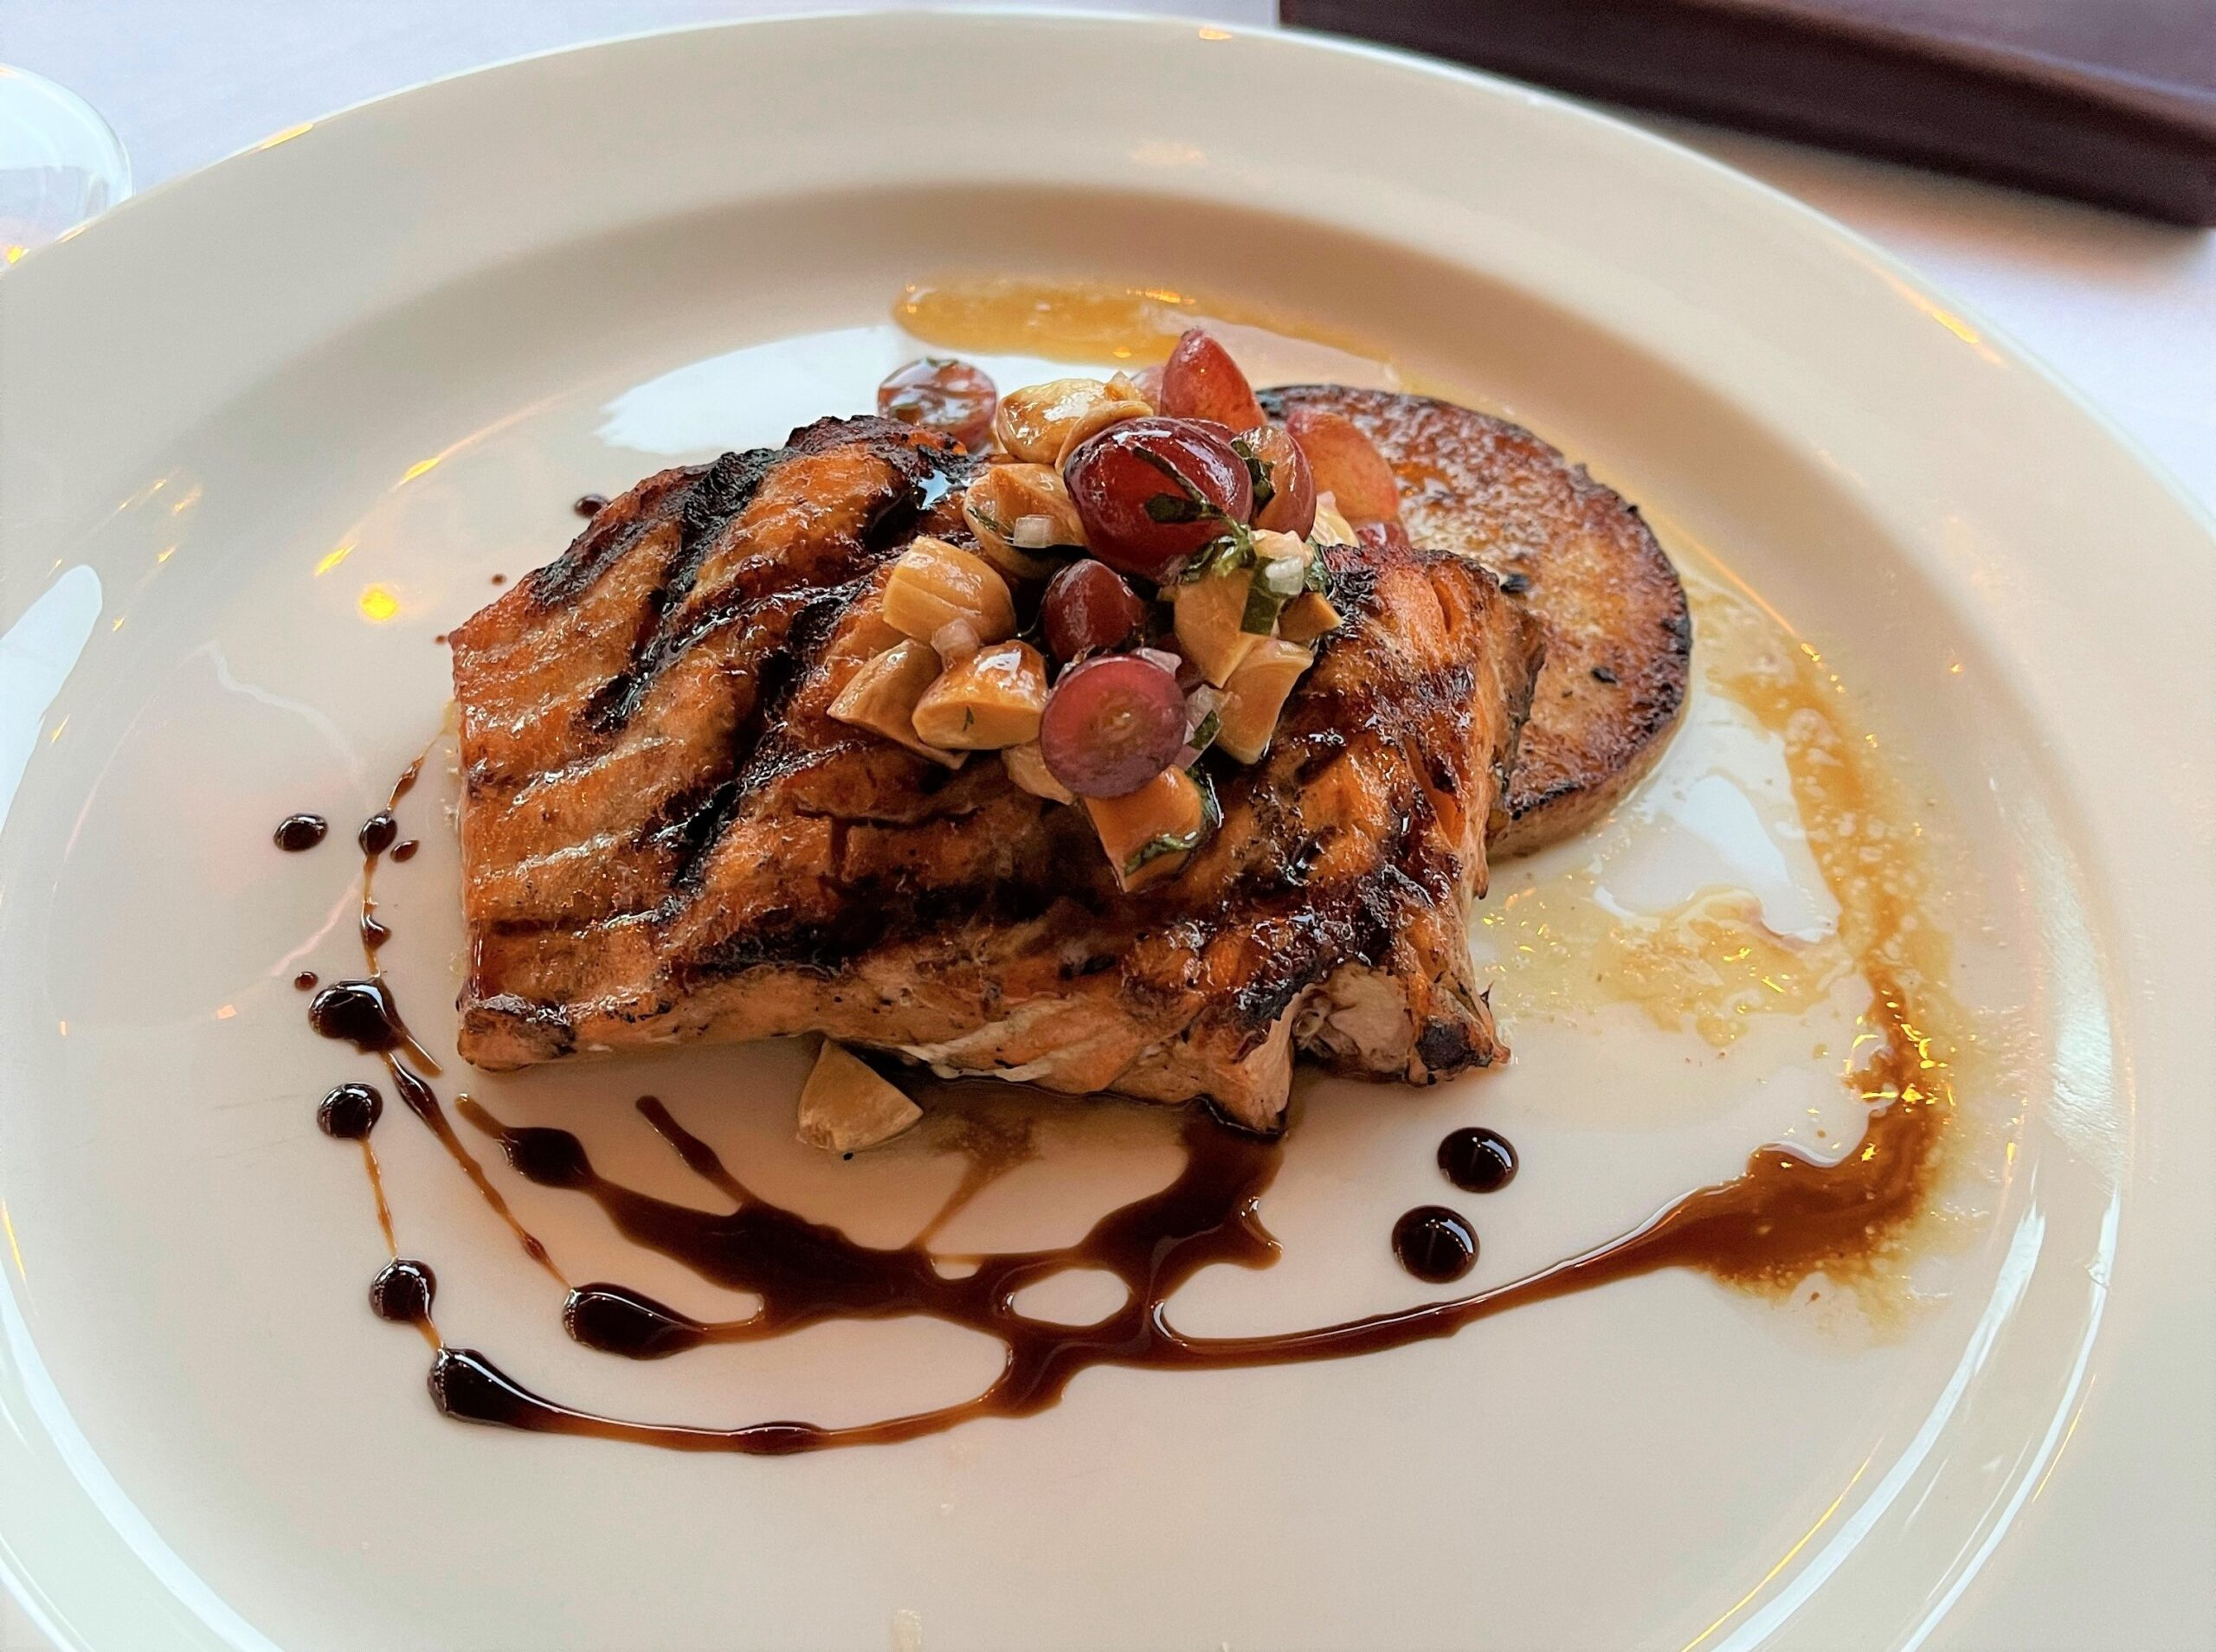 Grilled Salmon at P.A.M.'s Restaurant.